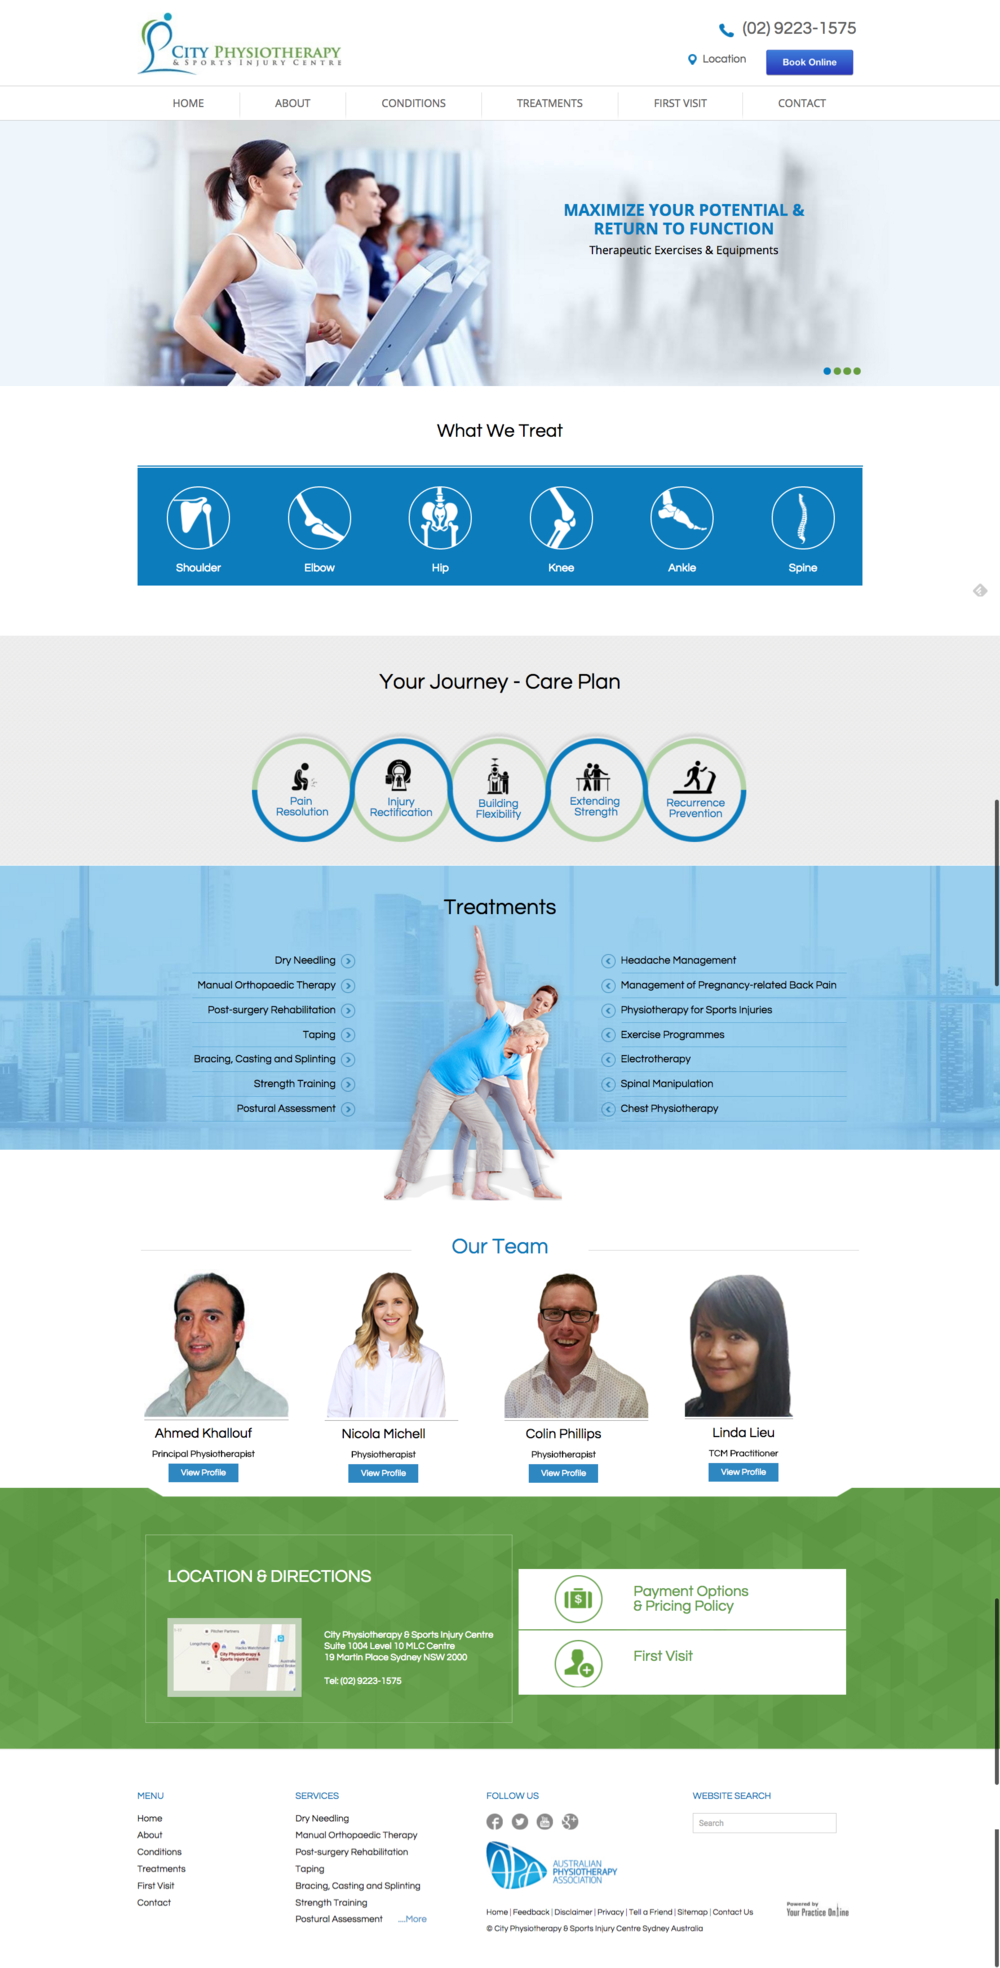 City Physiotherapy   Sports Injury Centre  Sydney   Australia.png